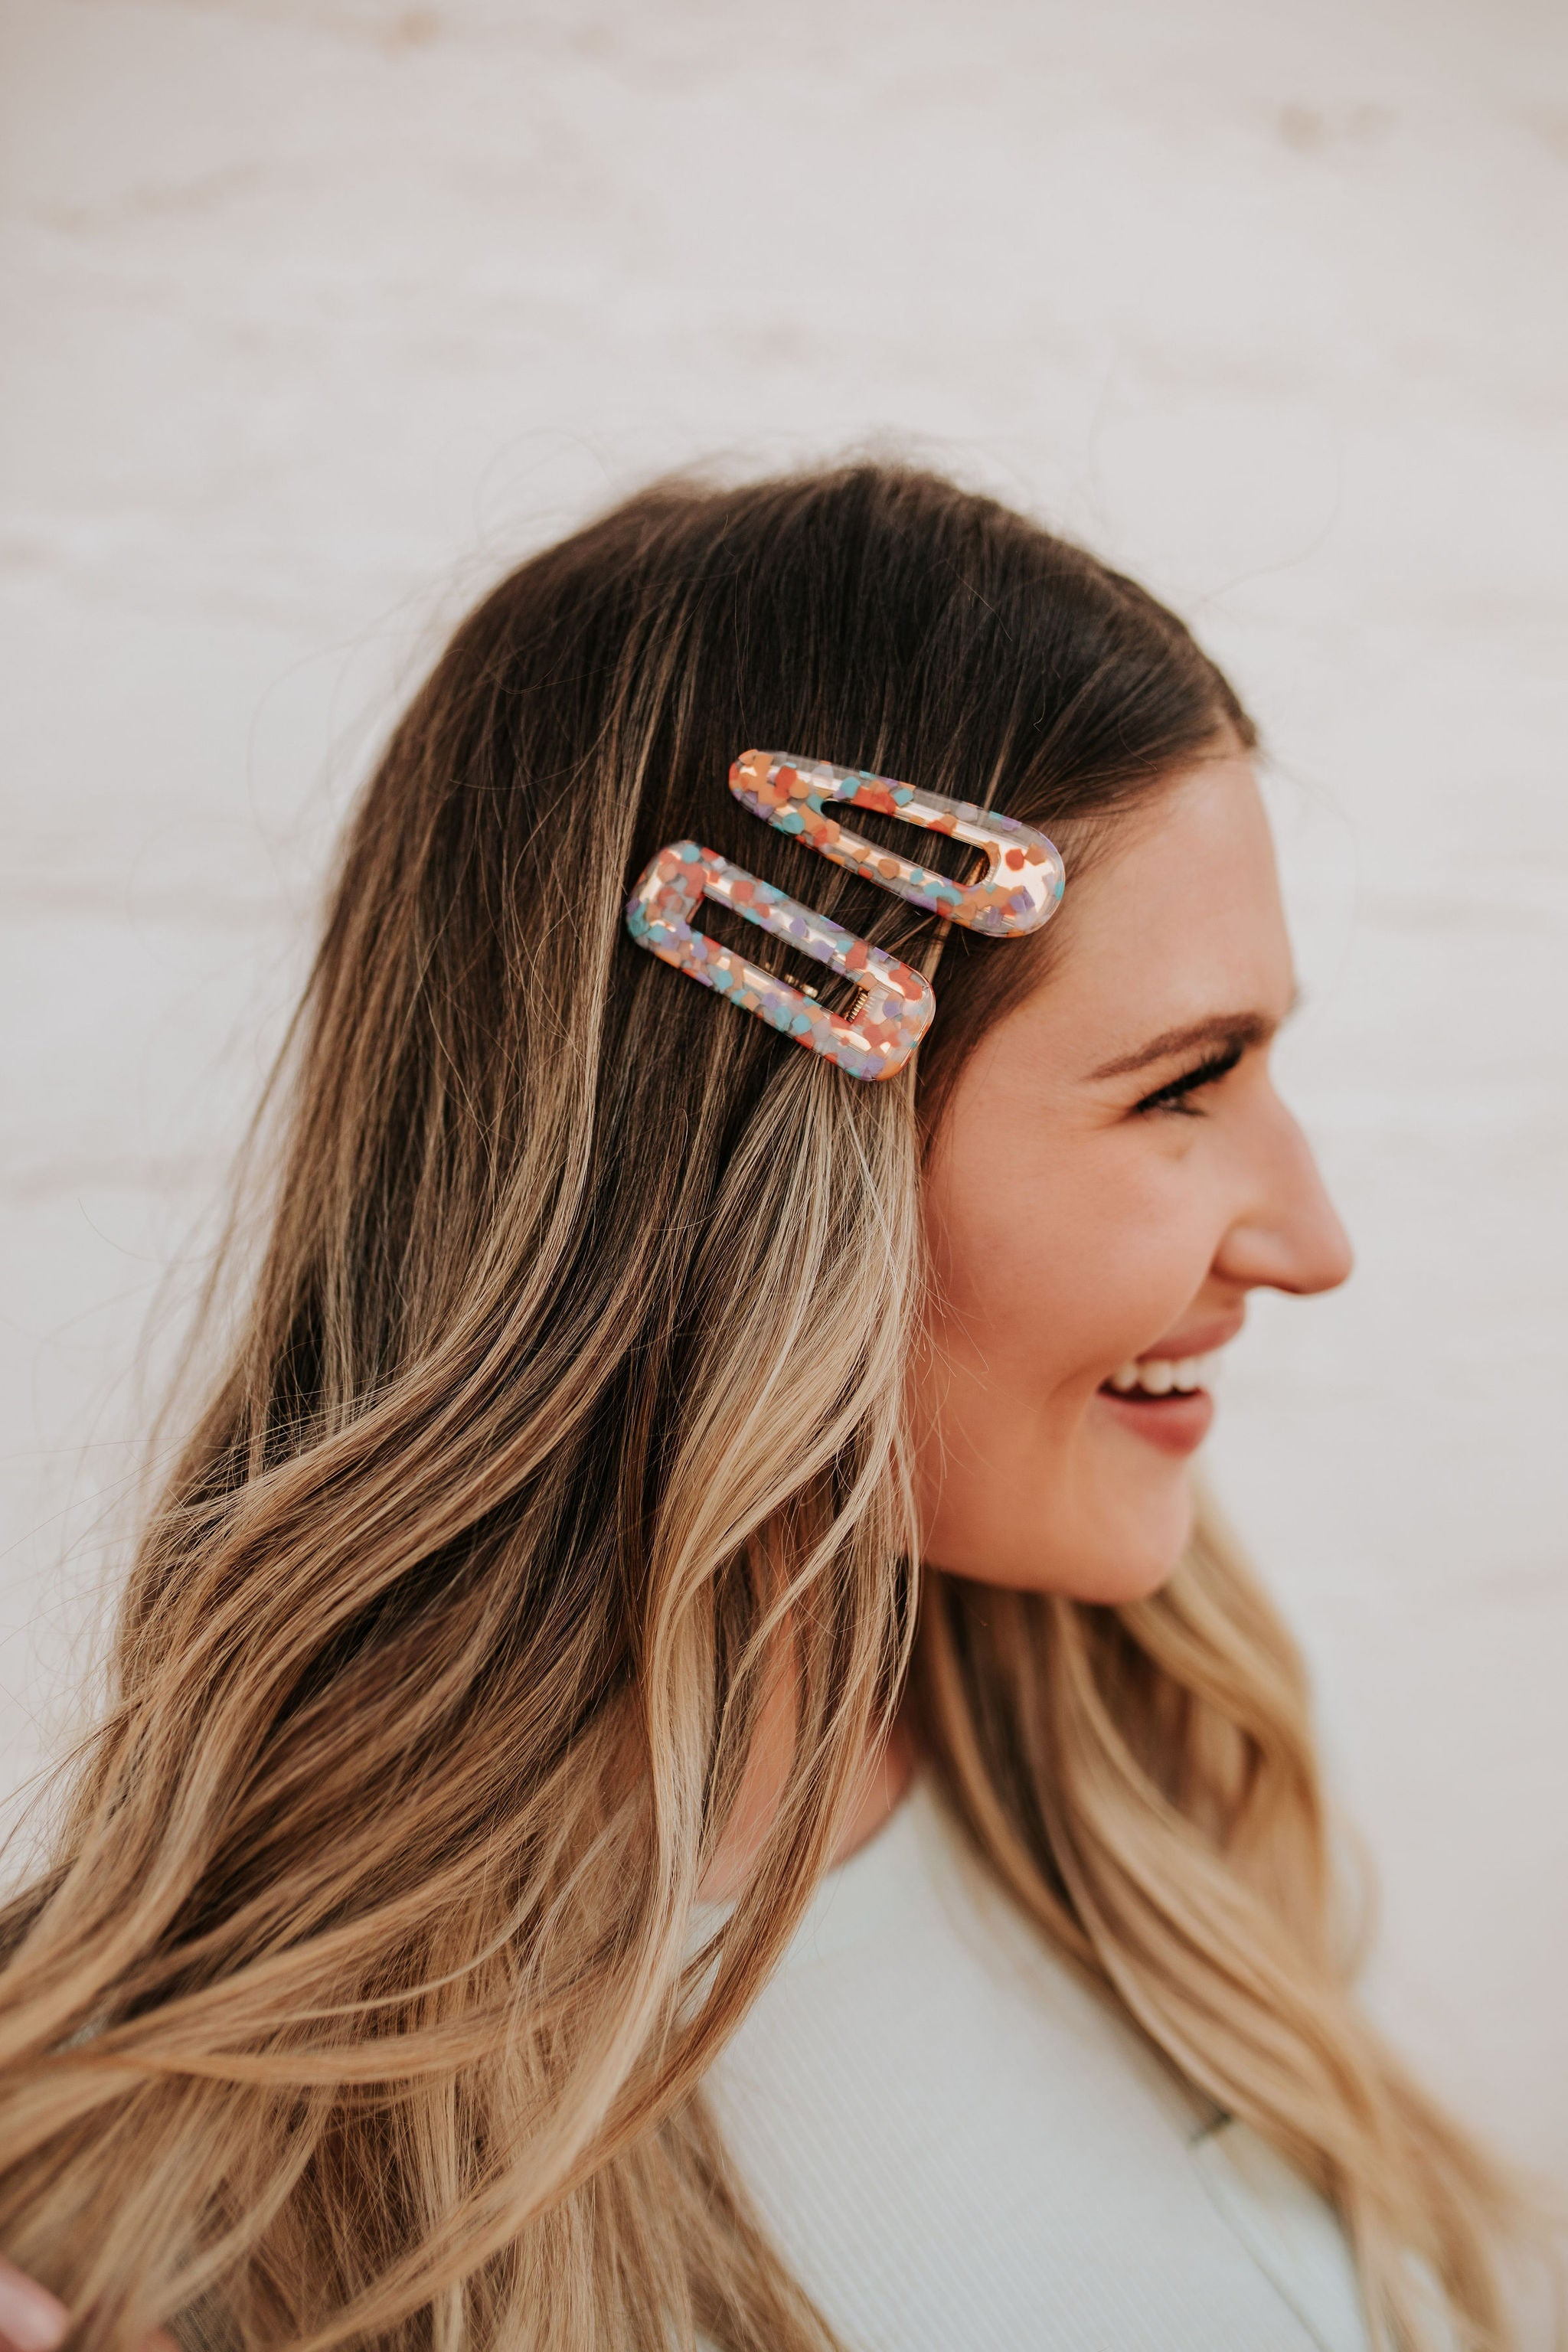 THE CONFETTI PRINT HAIR CLIP